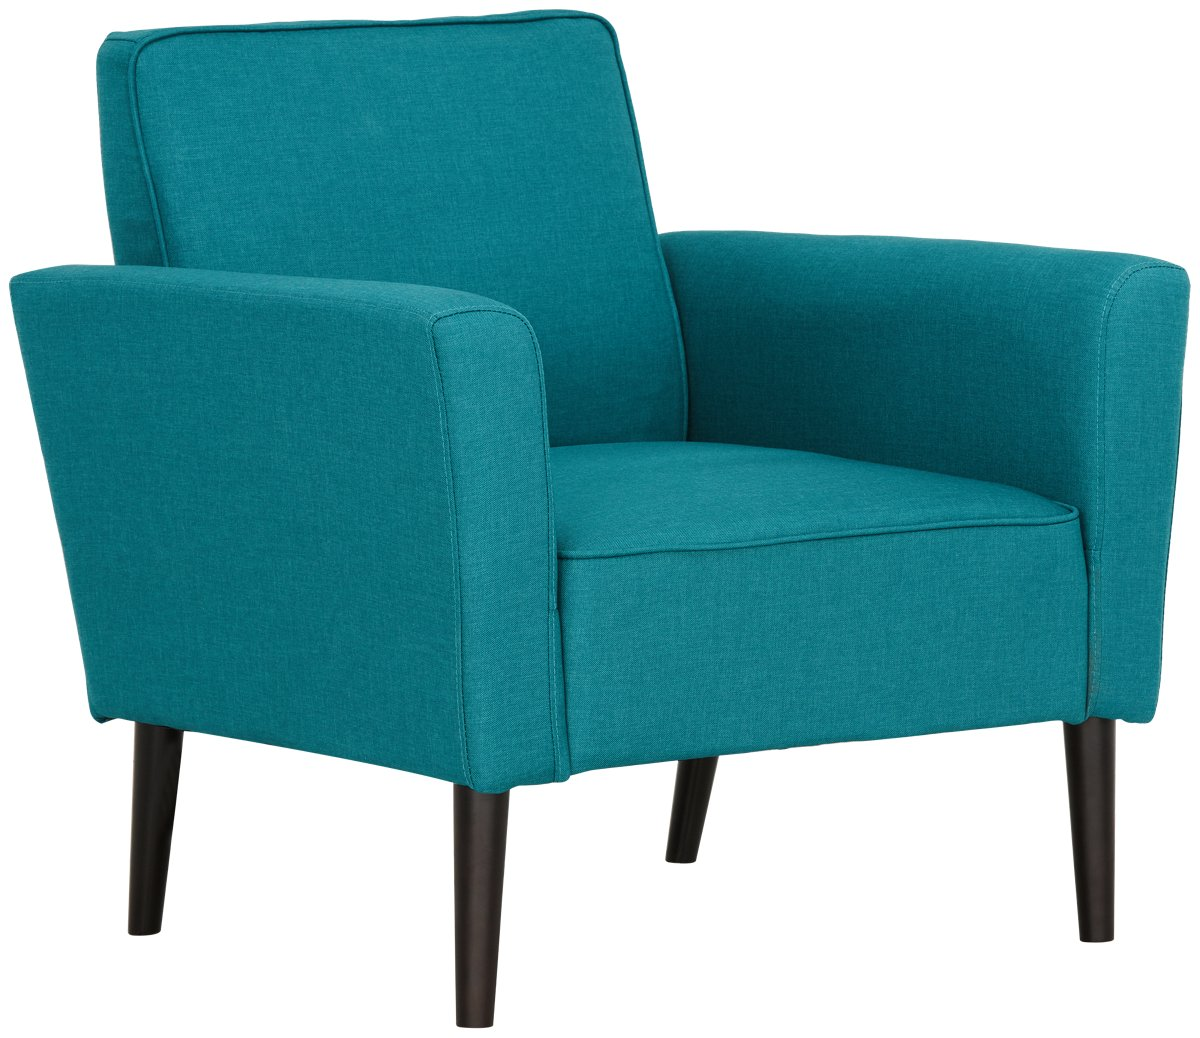 City Furniture: Sage Teal Accent Chair